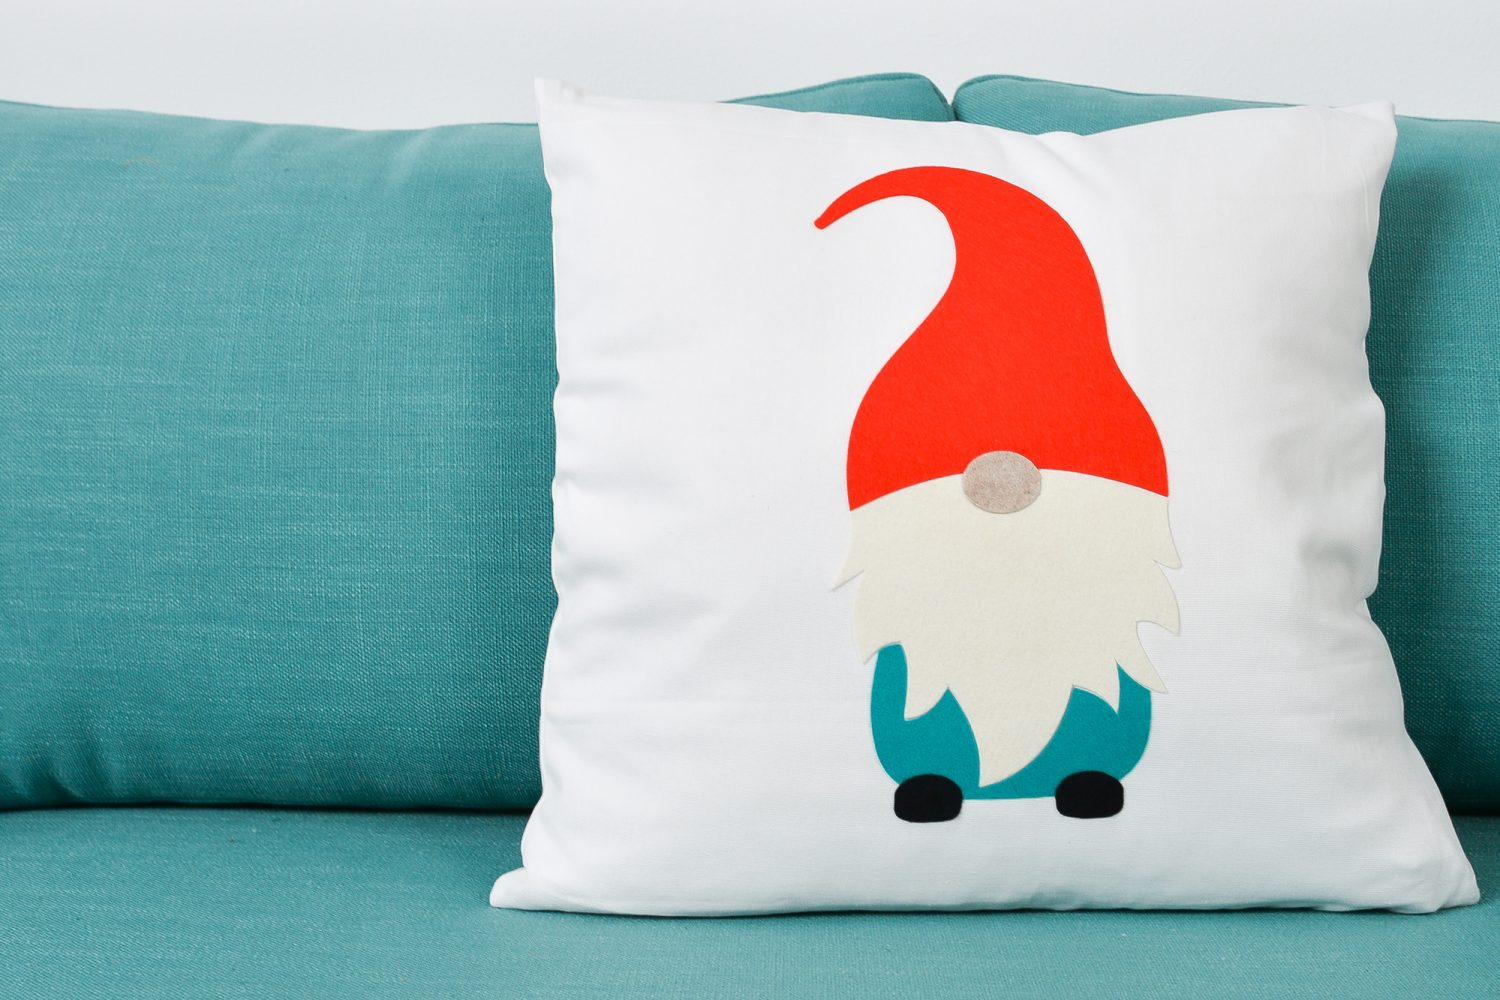 Finished gnome pillow sitting on a blue couch.